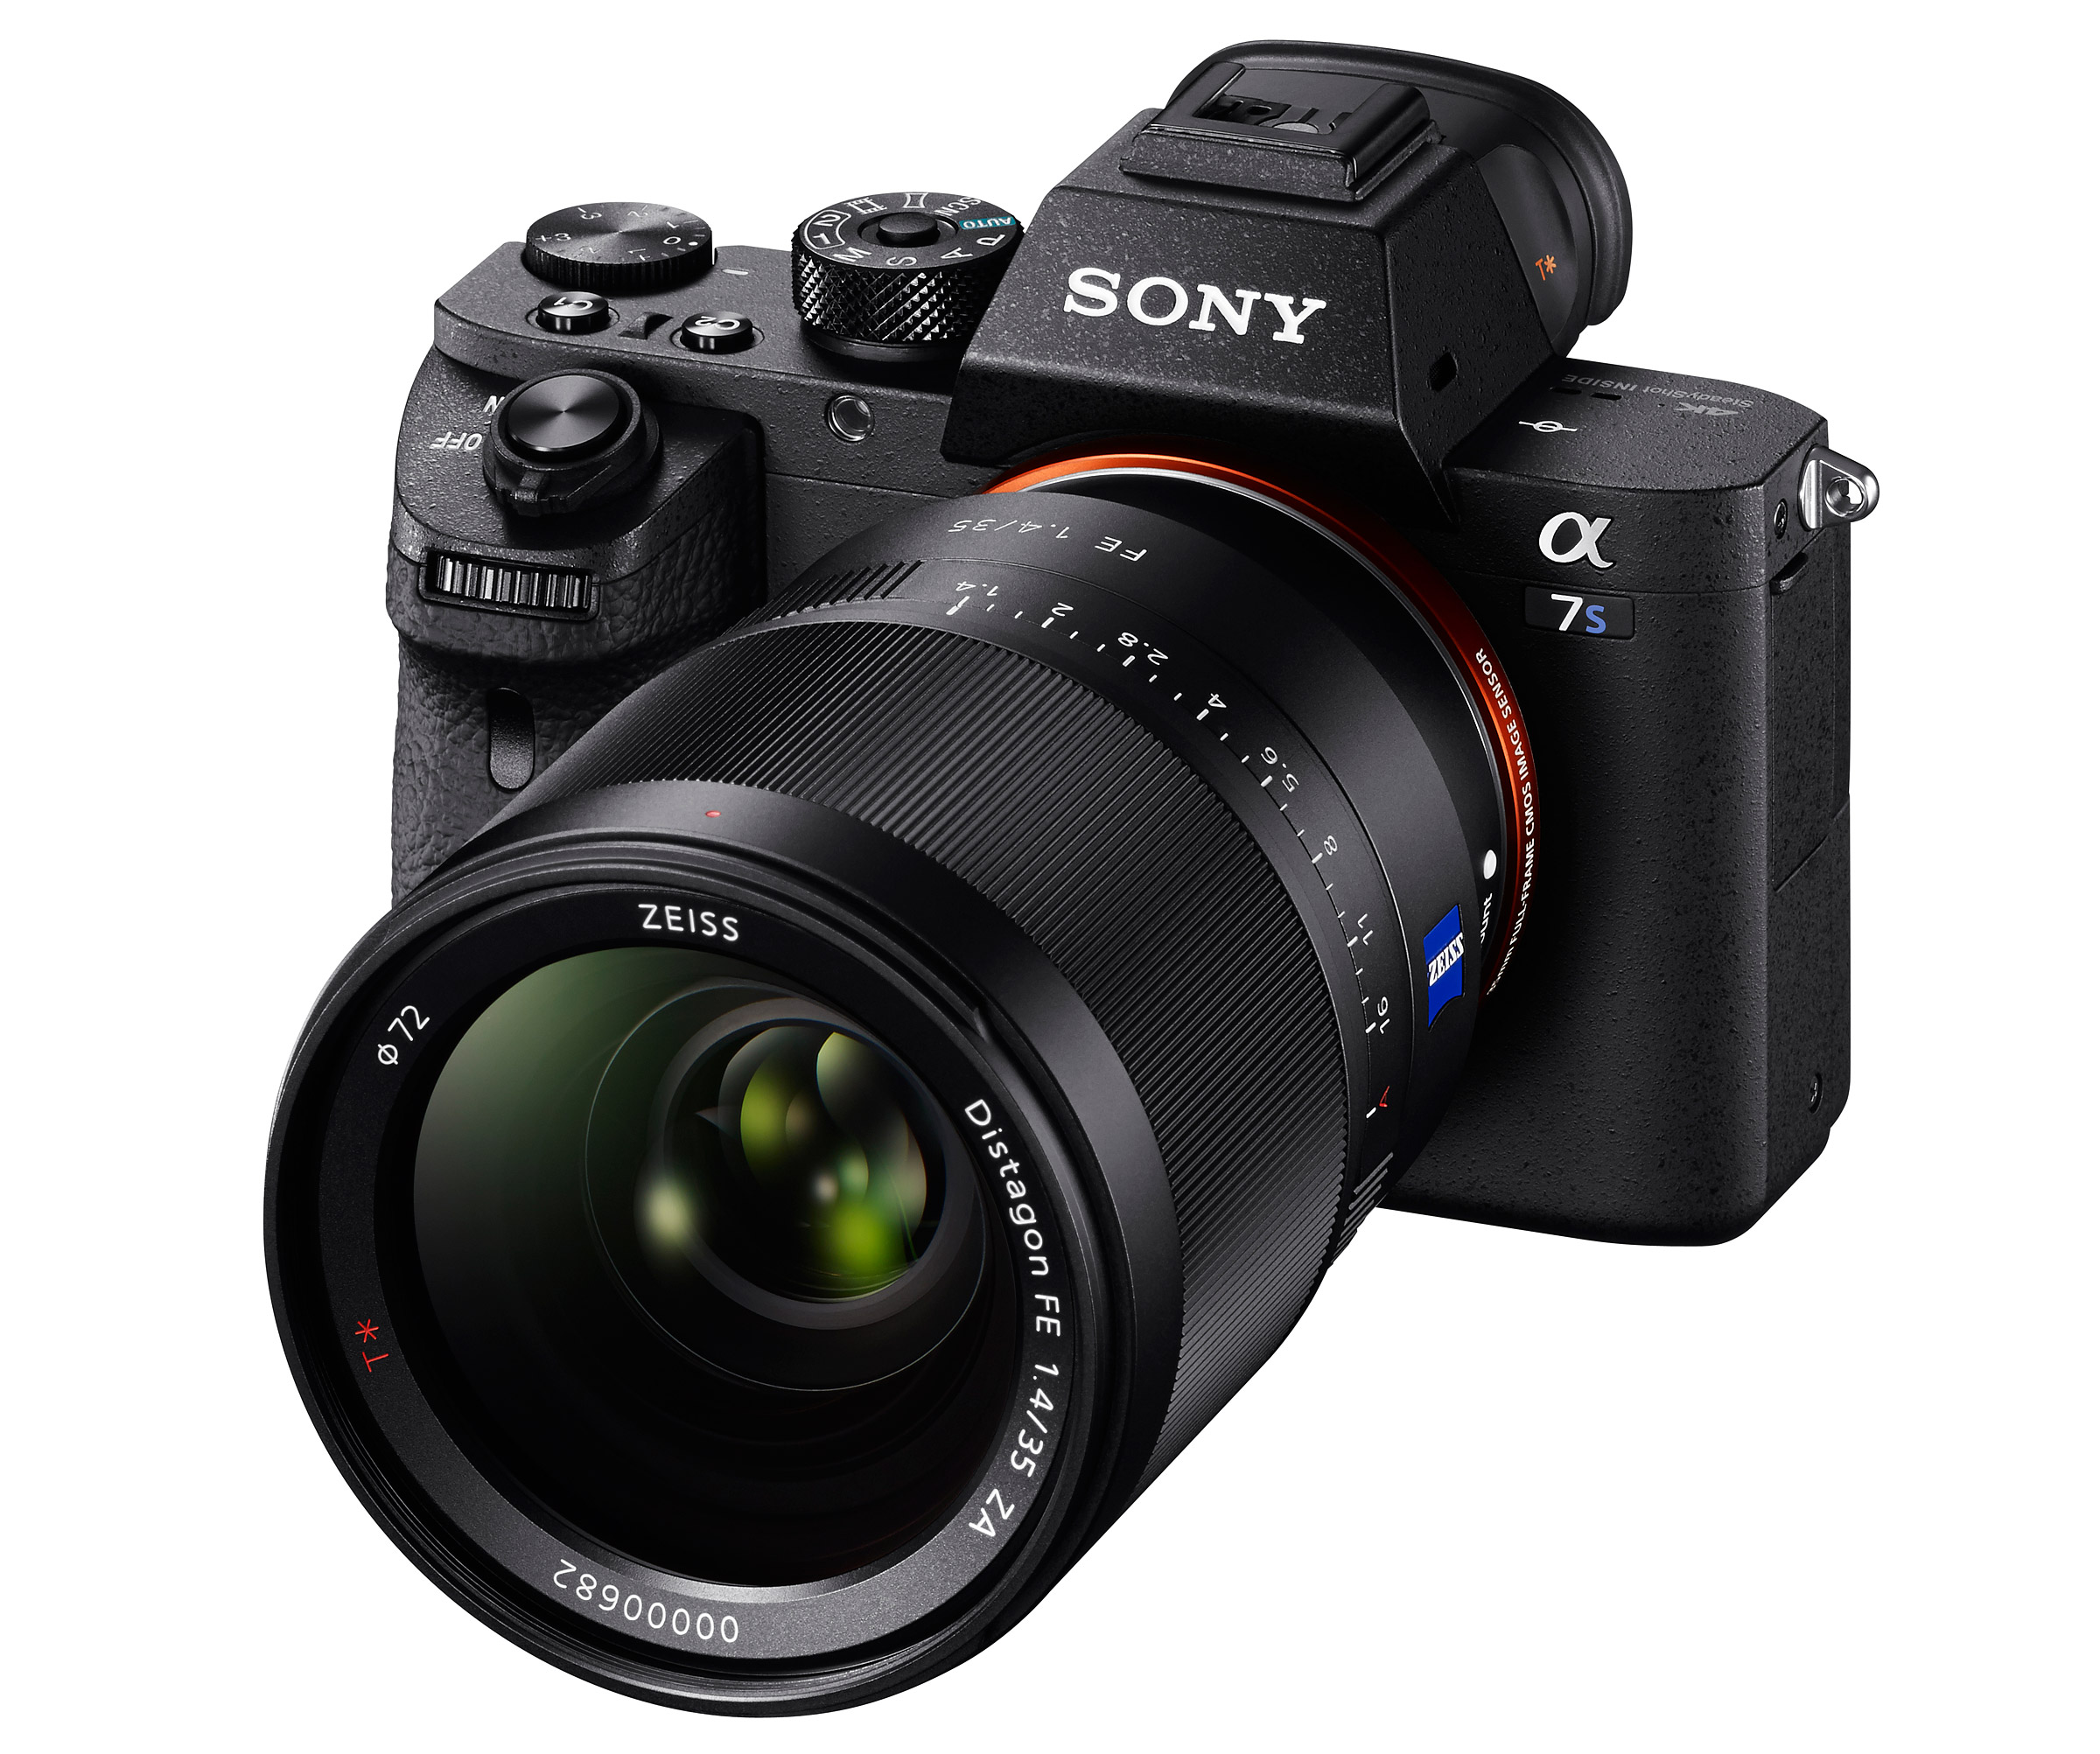 The Sony A7s II is a mirrorless camera with FF 1 0x sensor and 12 2 megapixels manufactured from 2015 The range of sensitivities including ISO extension